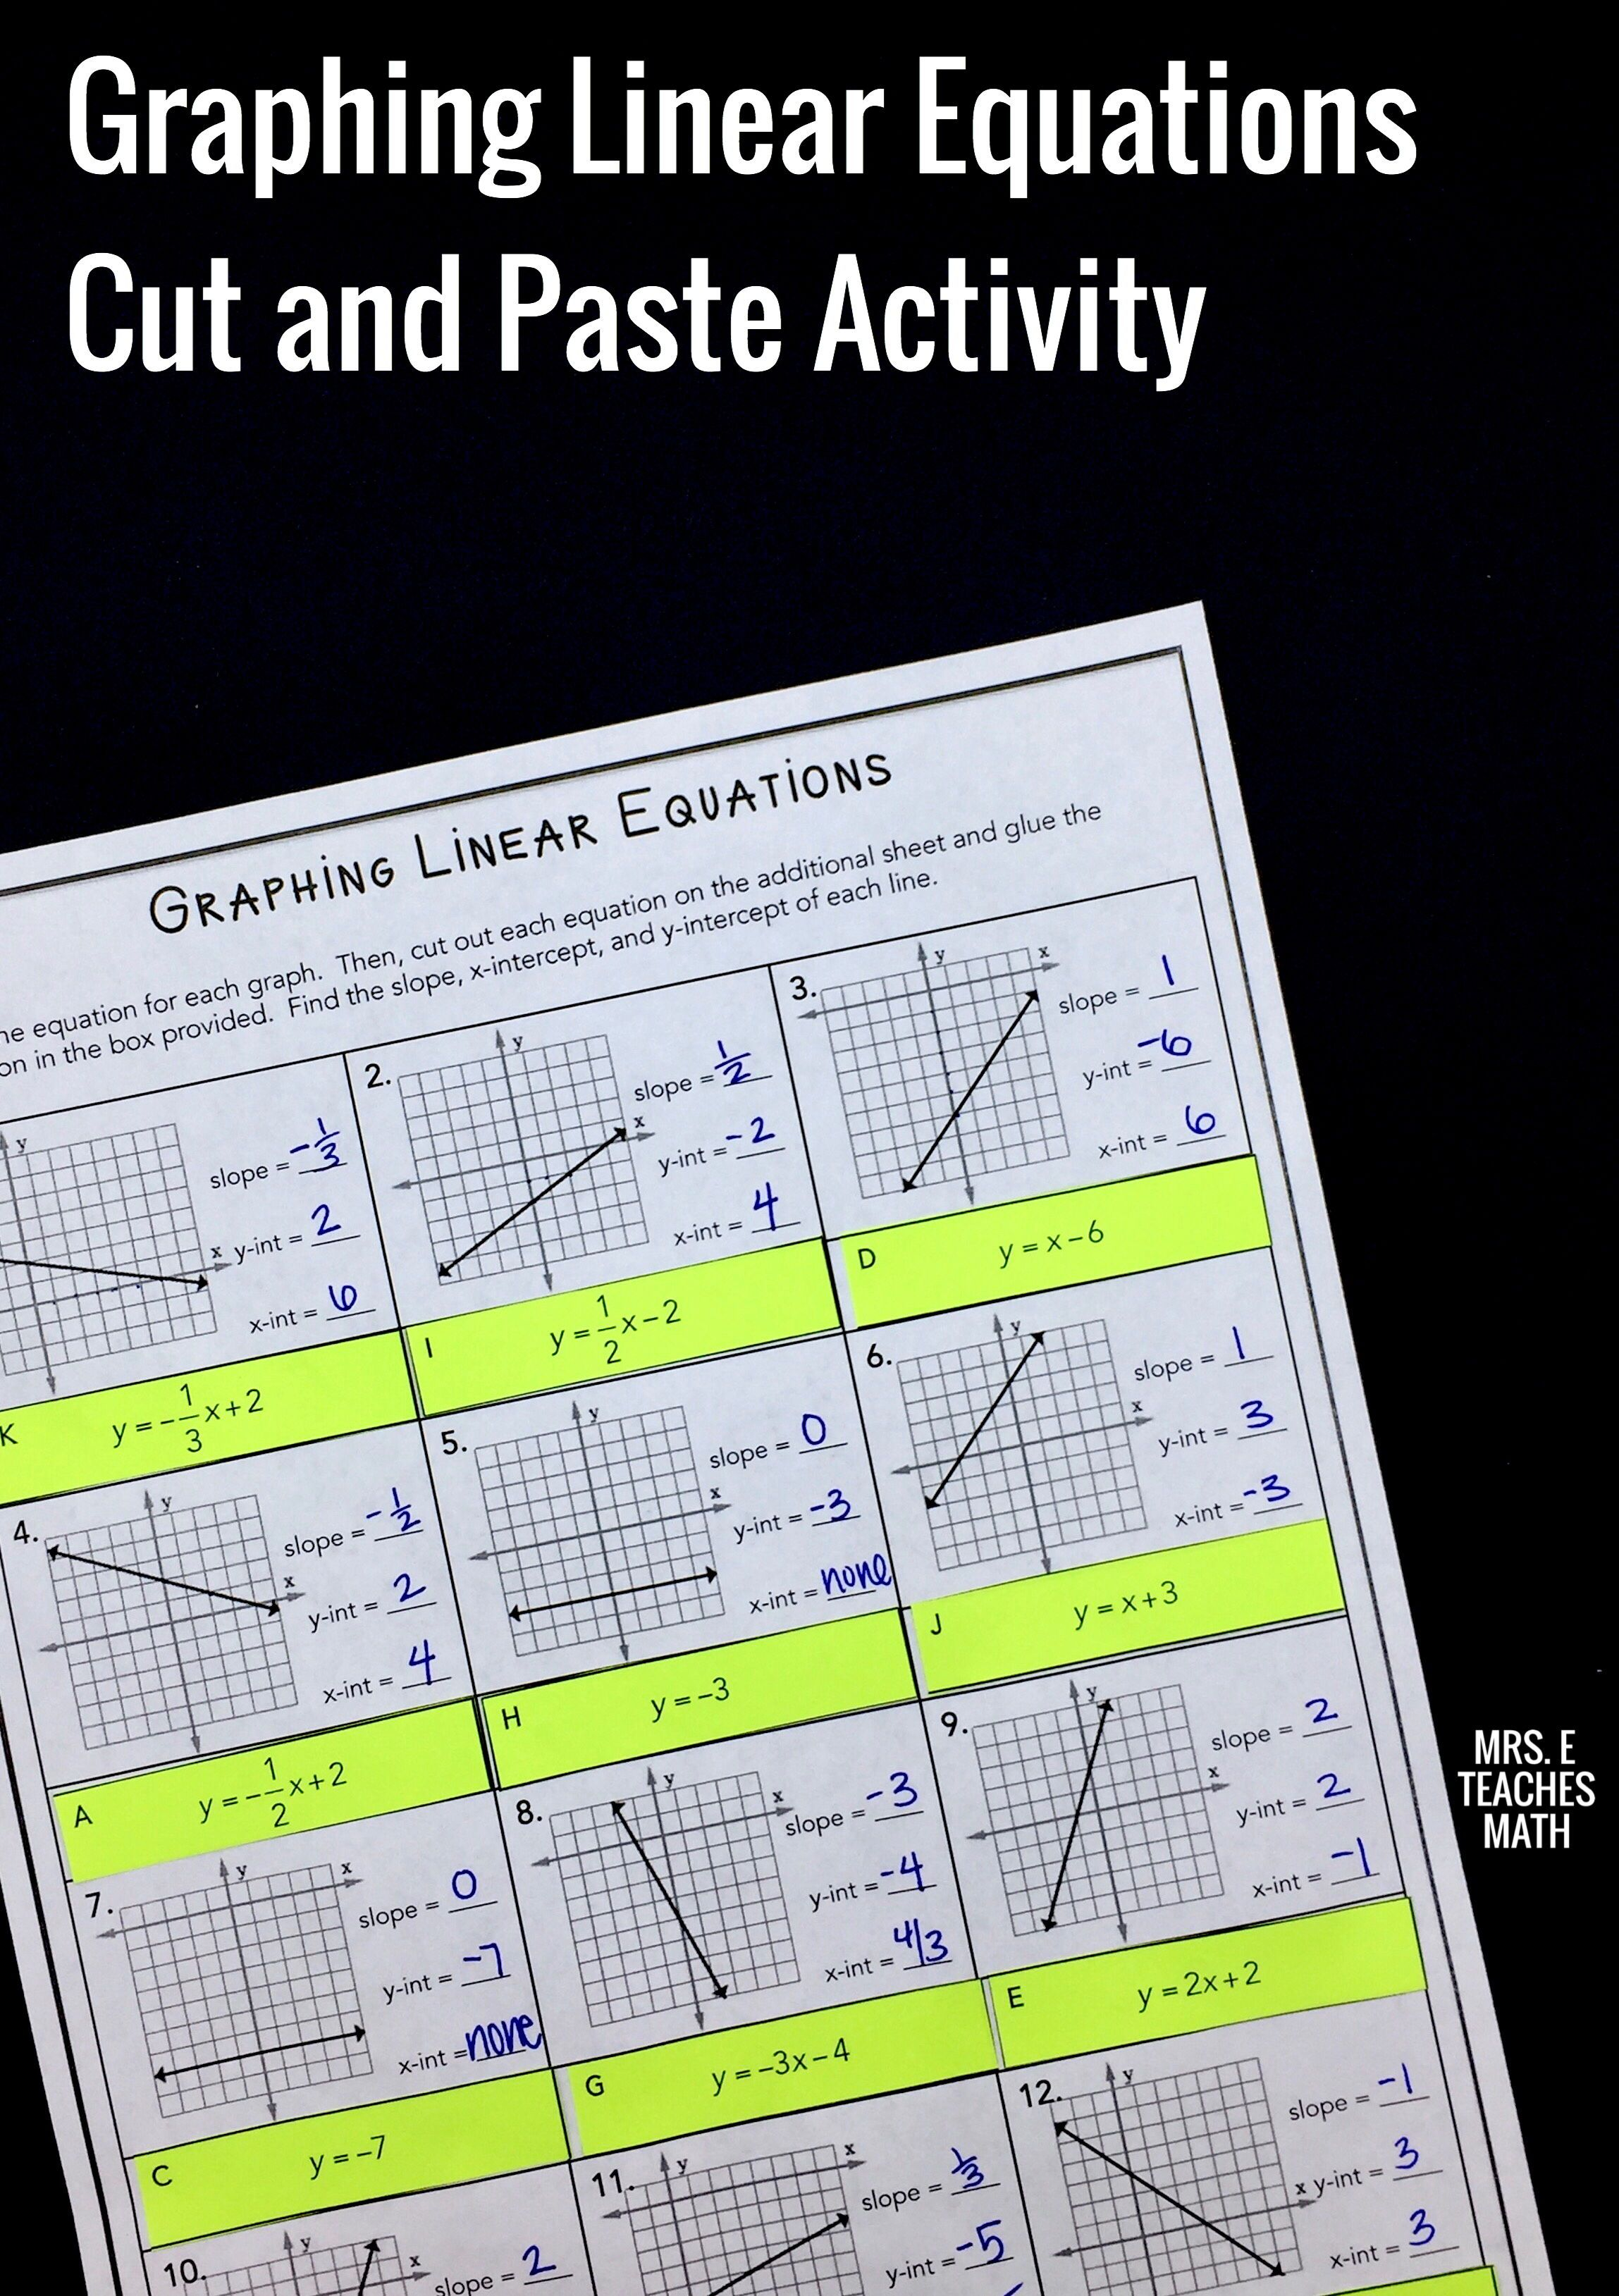 Graphing Linear Equations Cut and Paste Worksheet ...